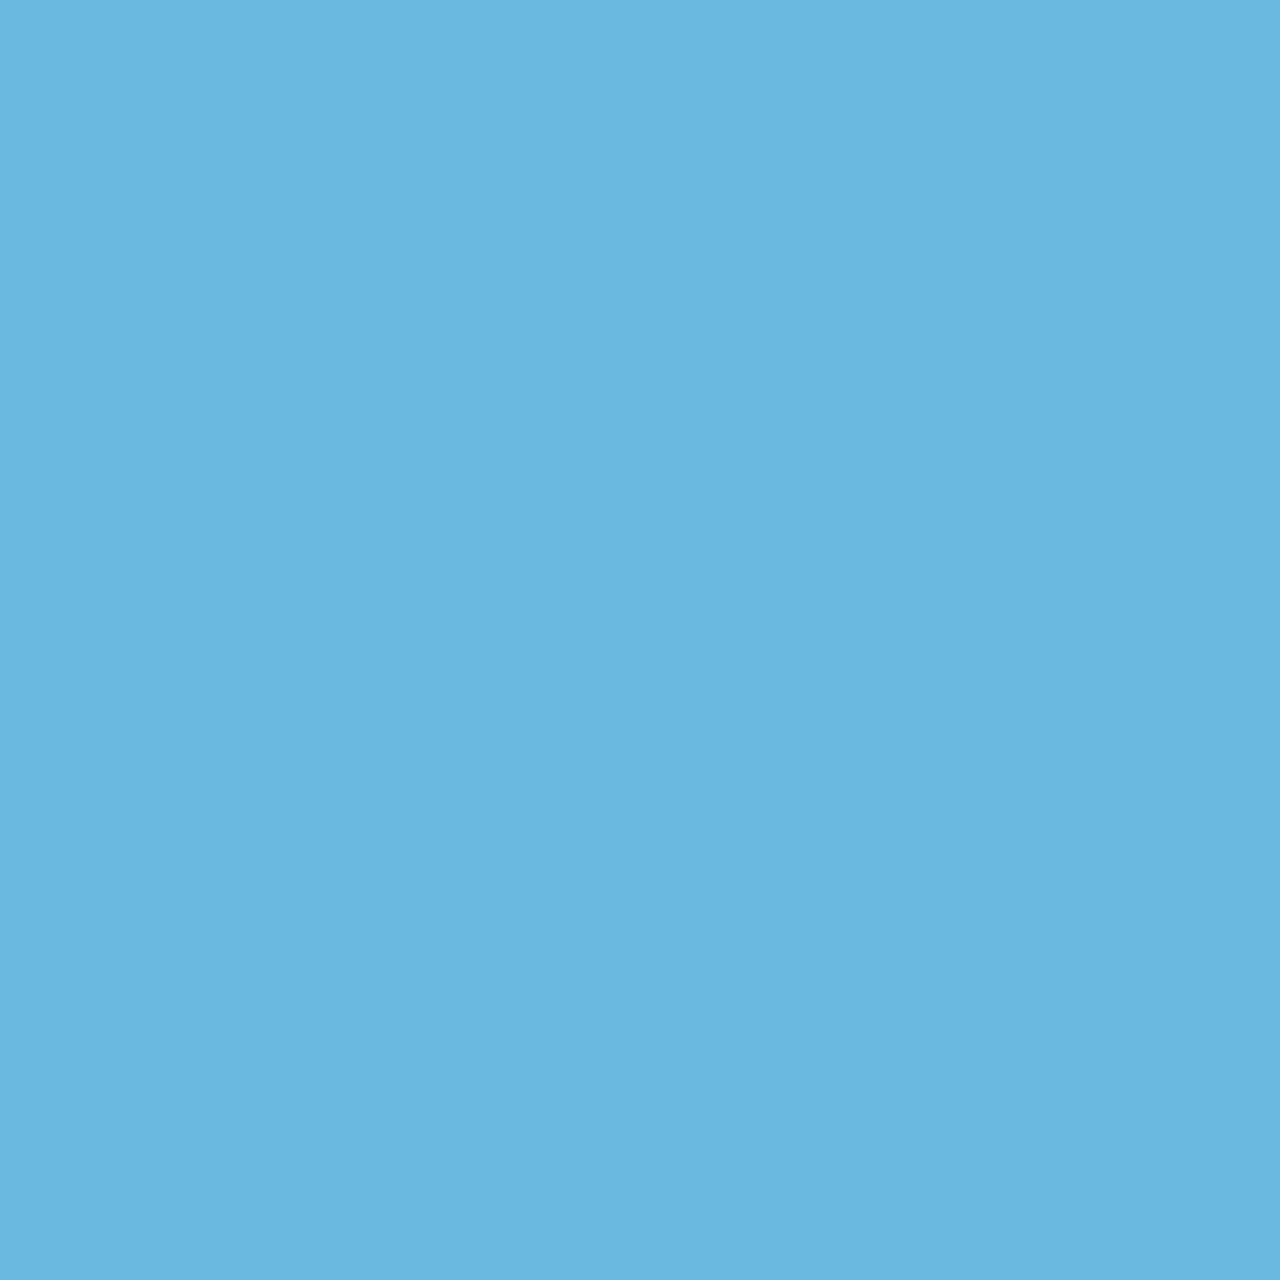 #0063 Rosco Gels Roscolux Pale Blue, 20x24""